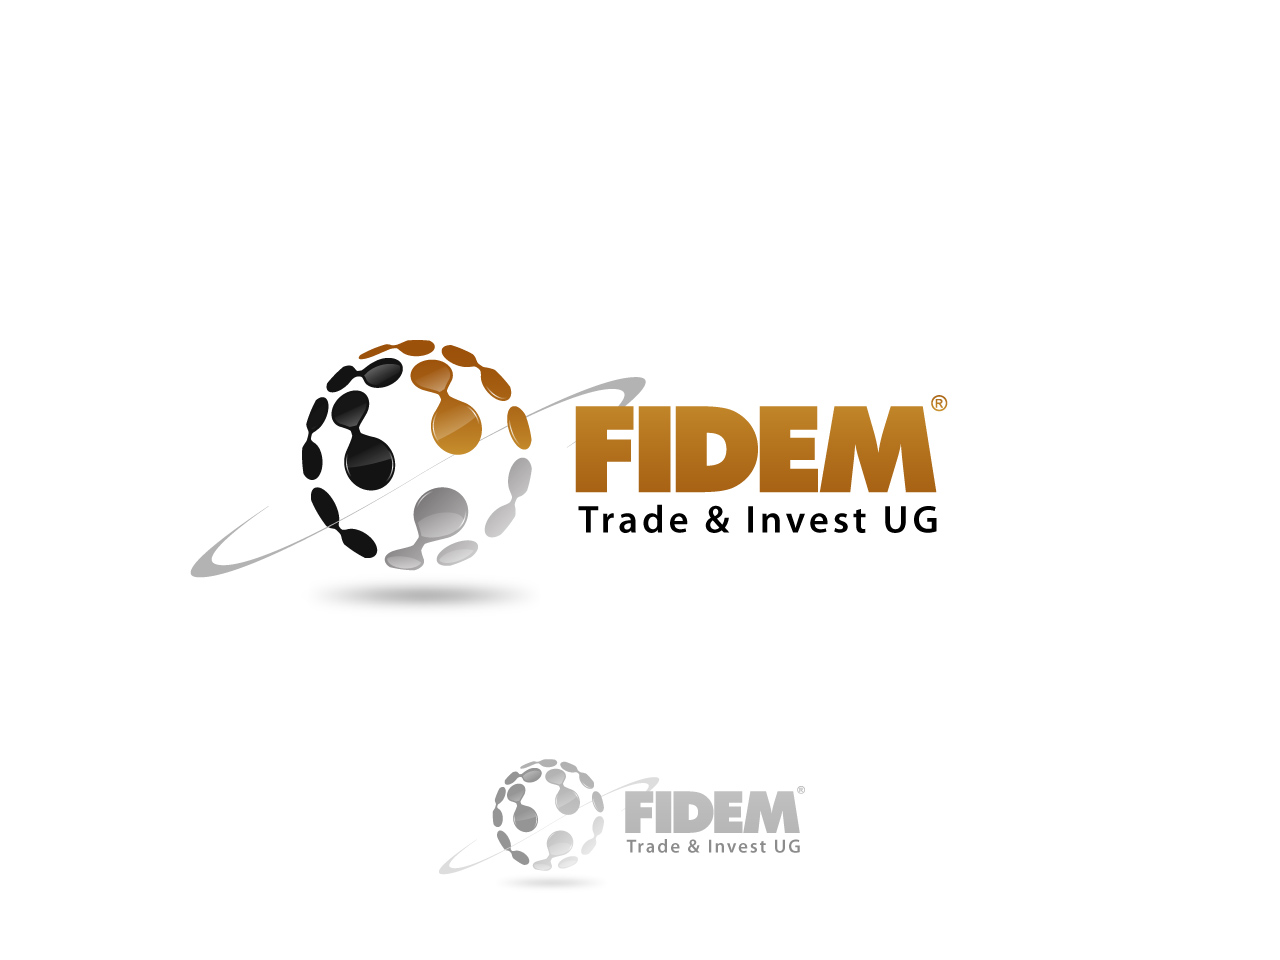 Logo Design by jpbituin - Entry No. 445 in the Logo Design Contest Professional Logo Design for FIDEM Trade & Invest UG.